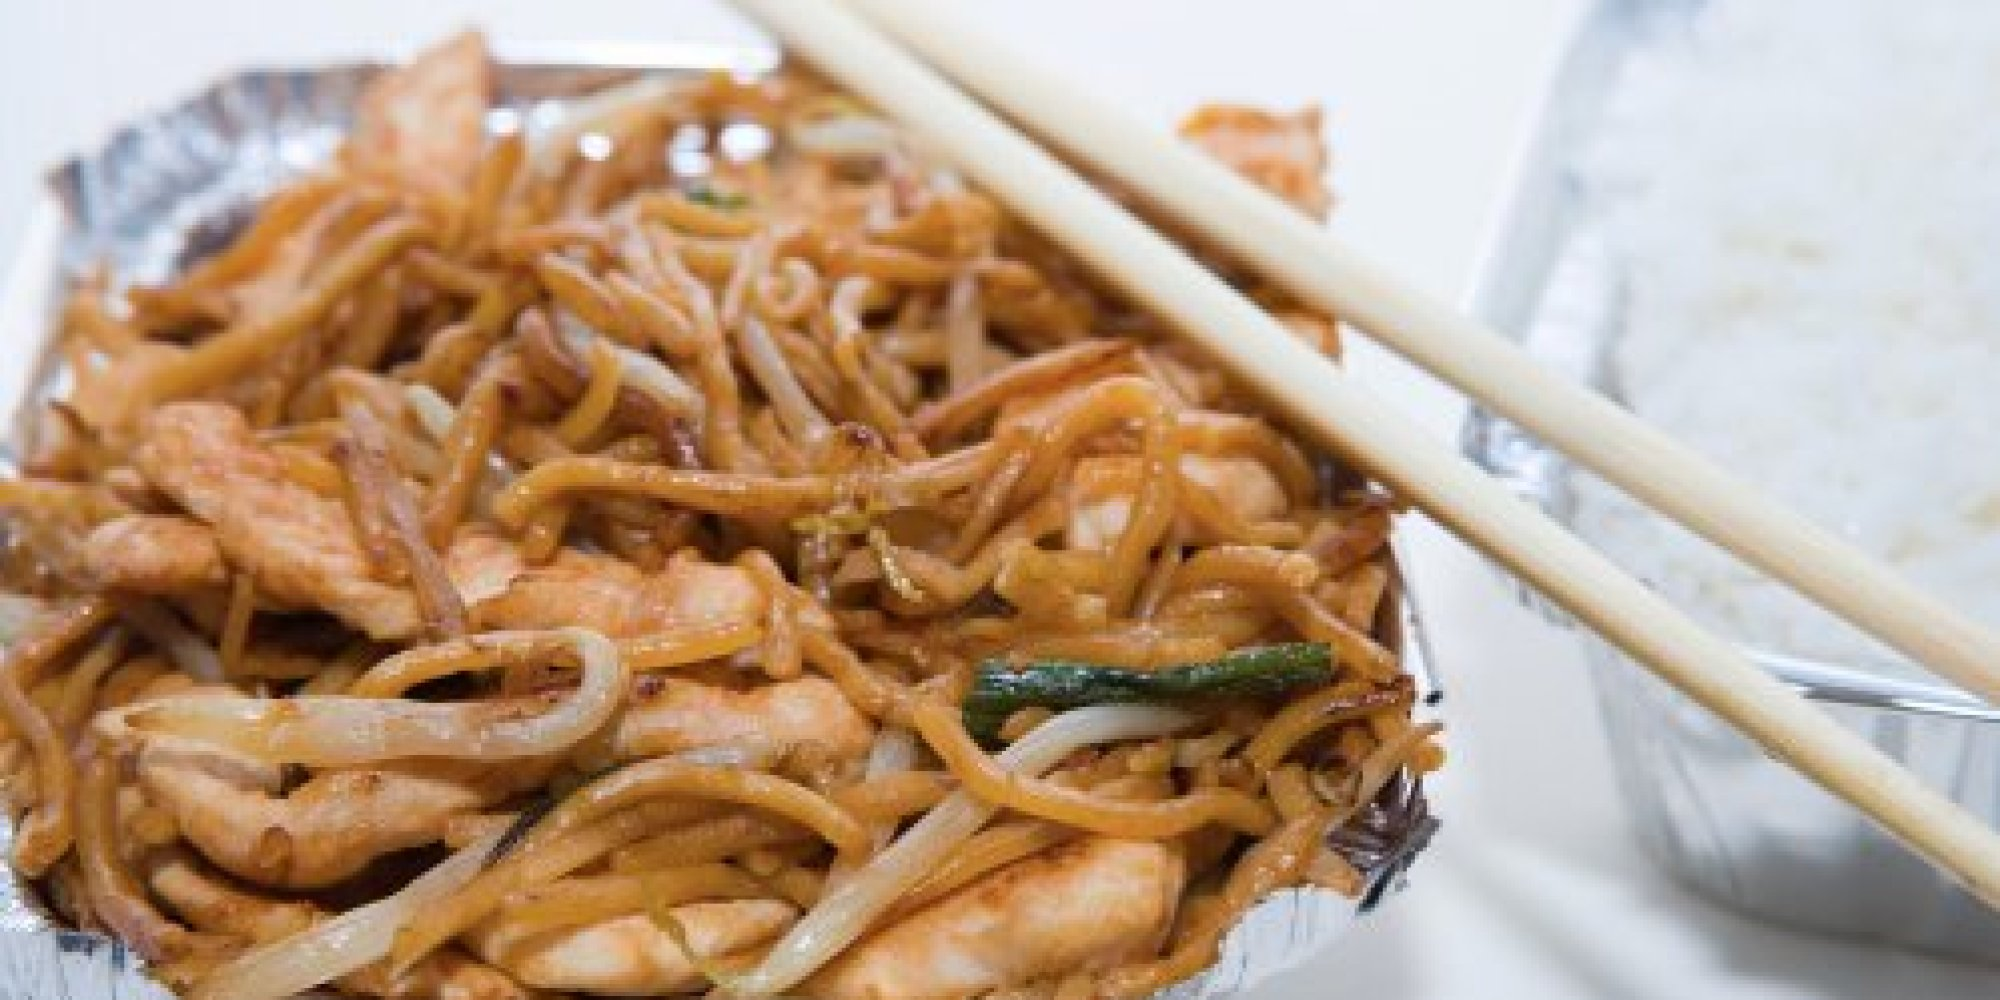 Chinese Takeaway British People Spend Nearly 30 Billion On Takeaways And